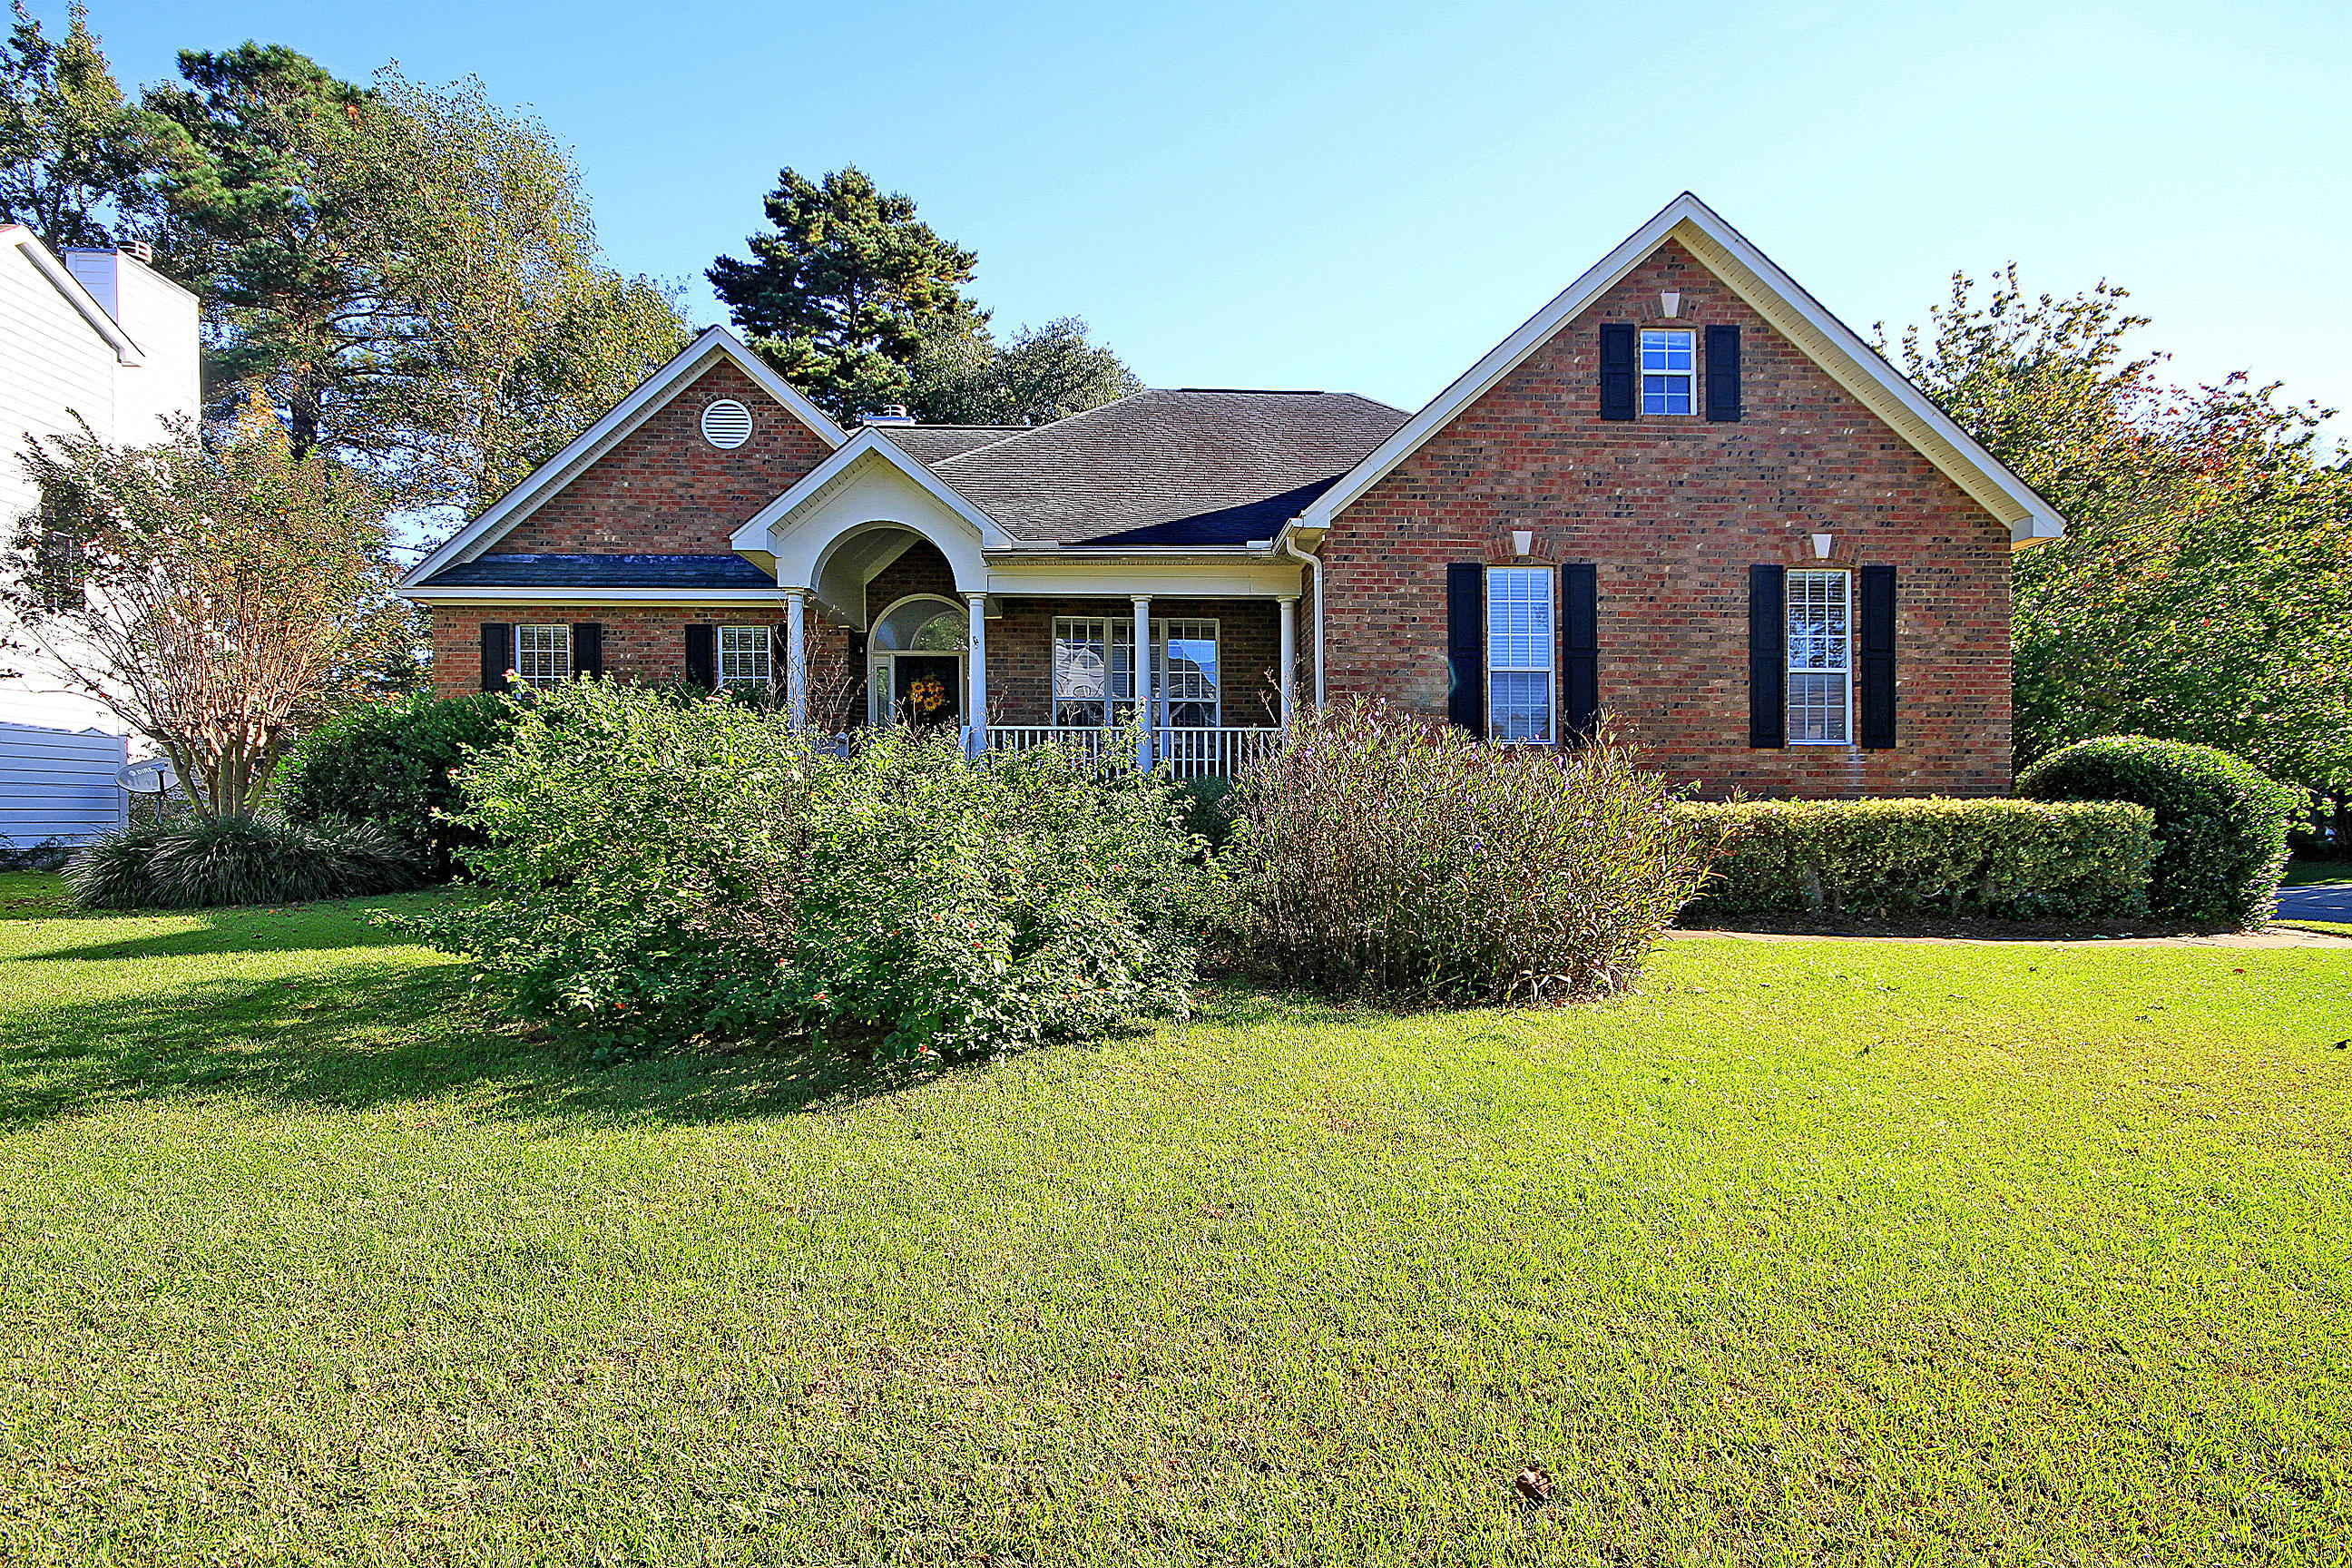 2001 Carriage Way Summerville, Sc 29485